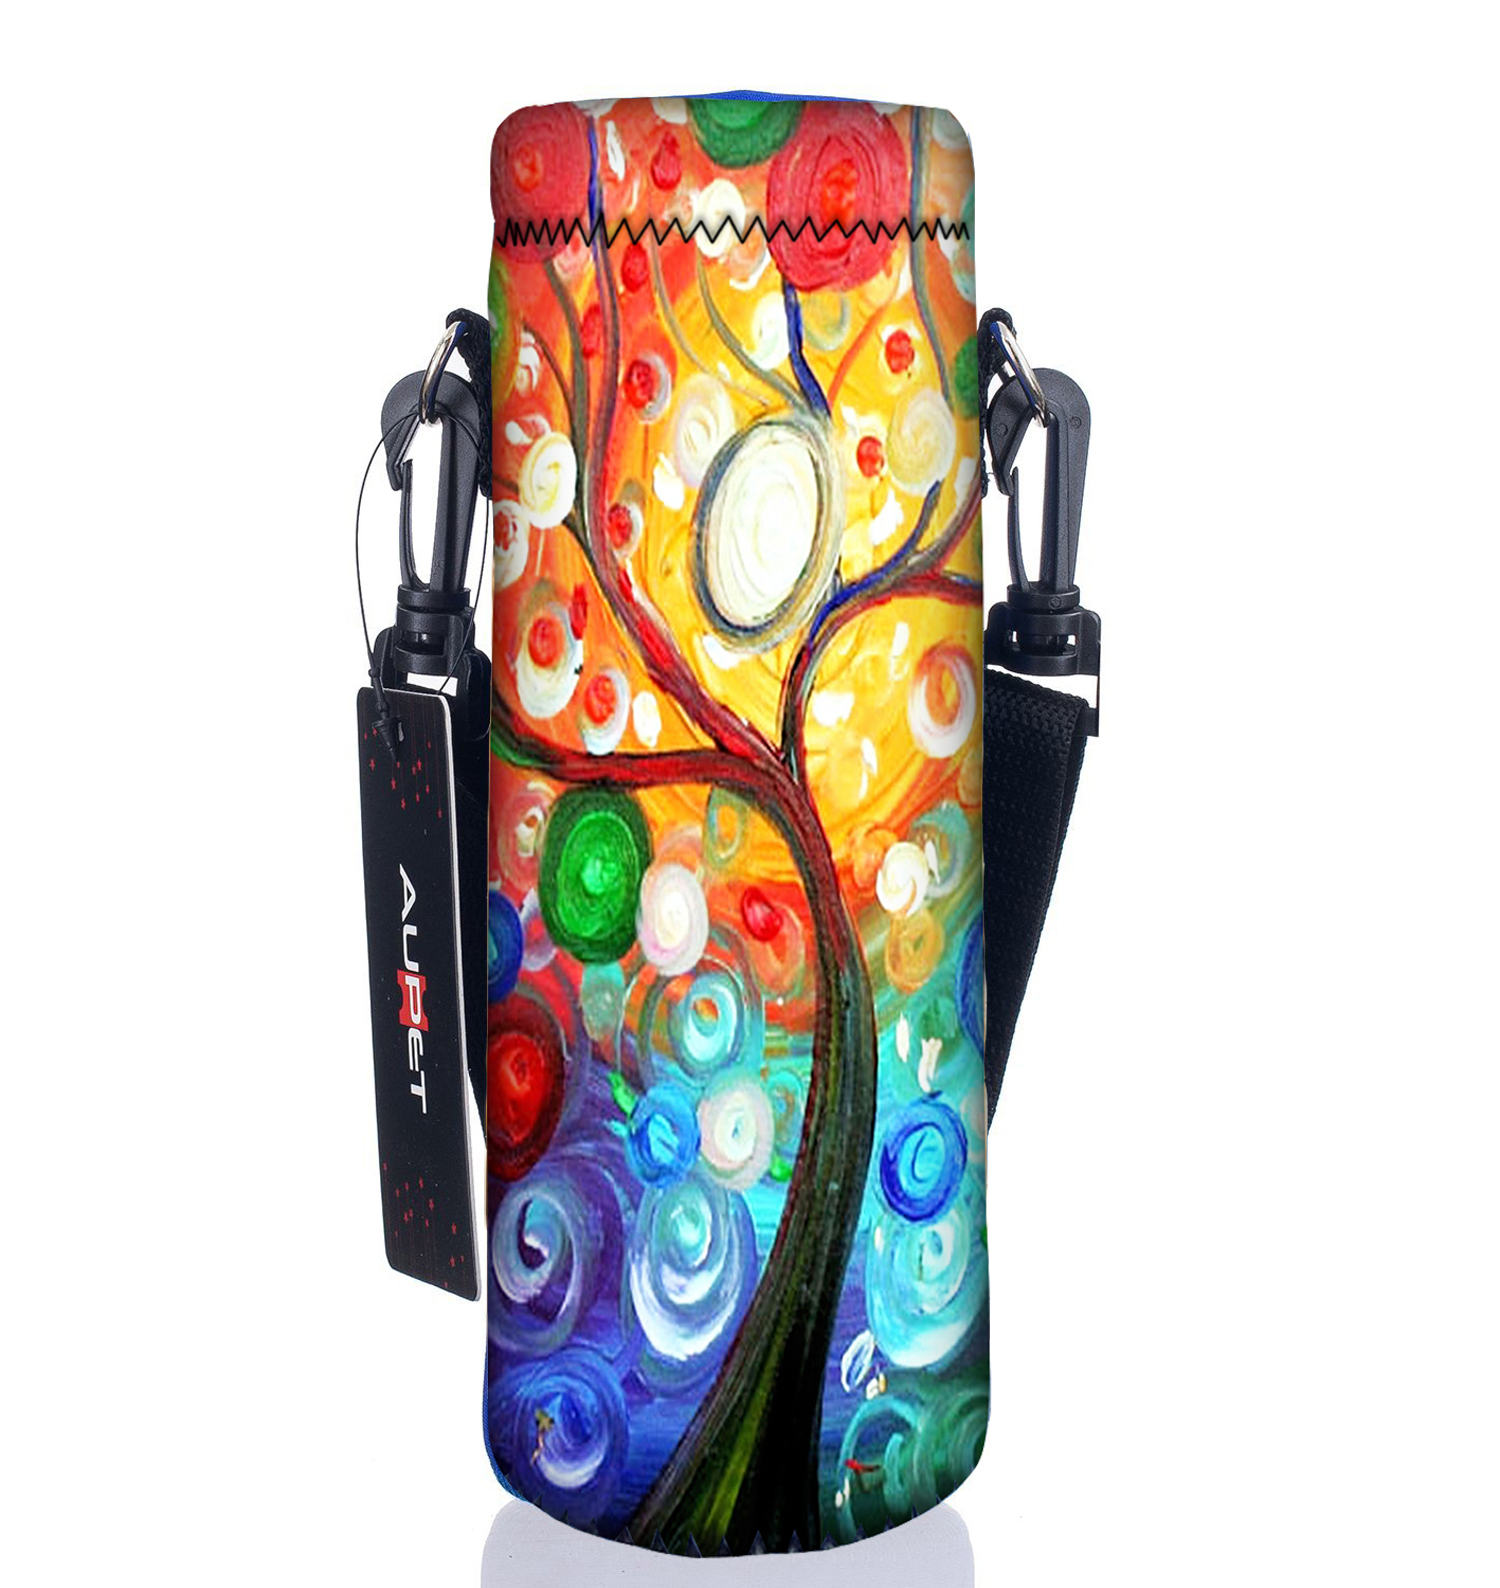 AUPET Water Bottle Carrier,Insulated Neoprene Water bottle Holder Bag Case Pouch Cover 1000ML or 750ML,Adjustable Shoulder Strap